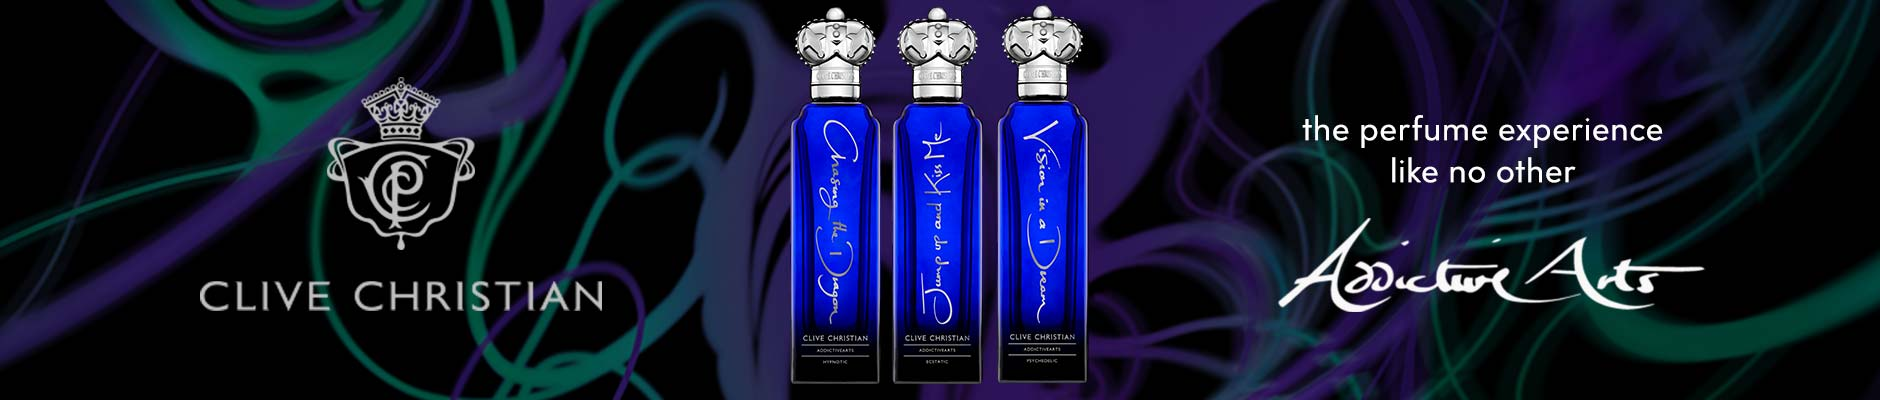 Clive Christian - the perfume experience like no other, addictive arts